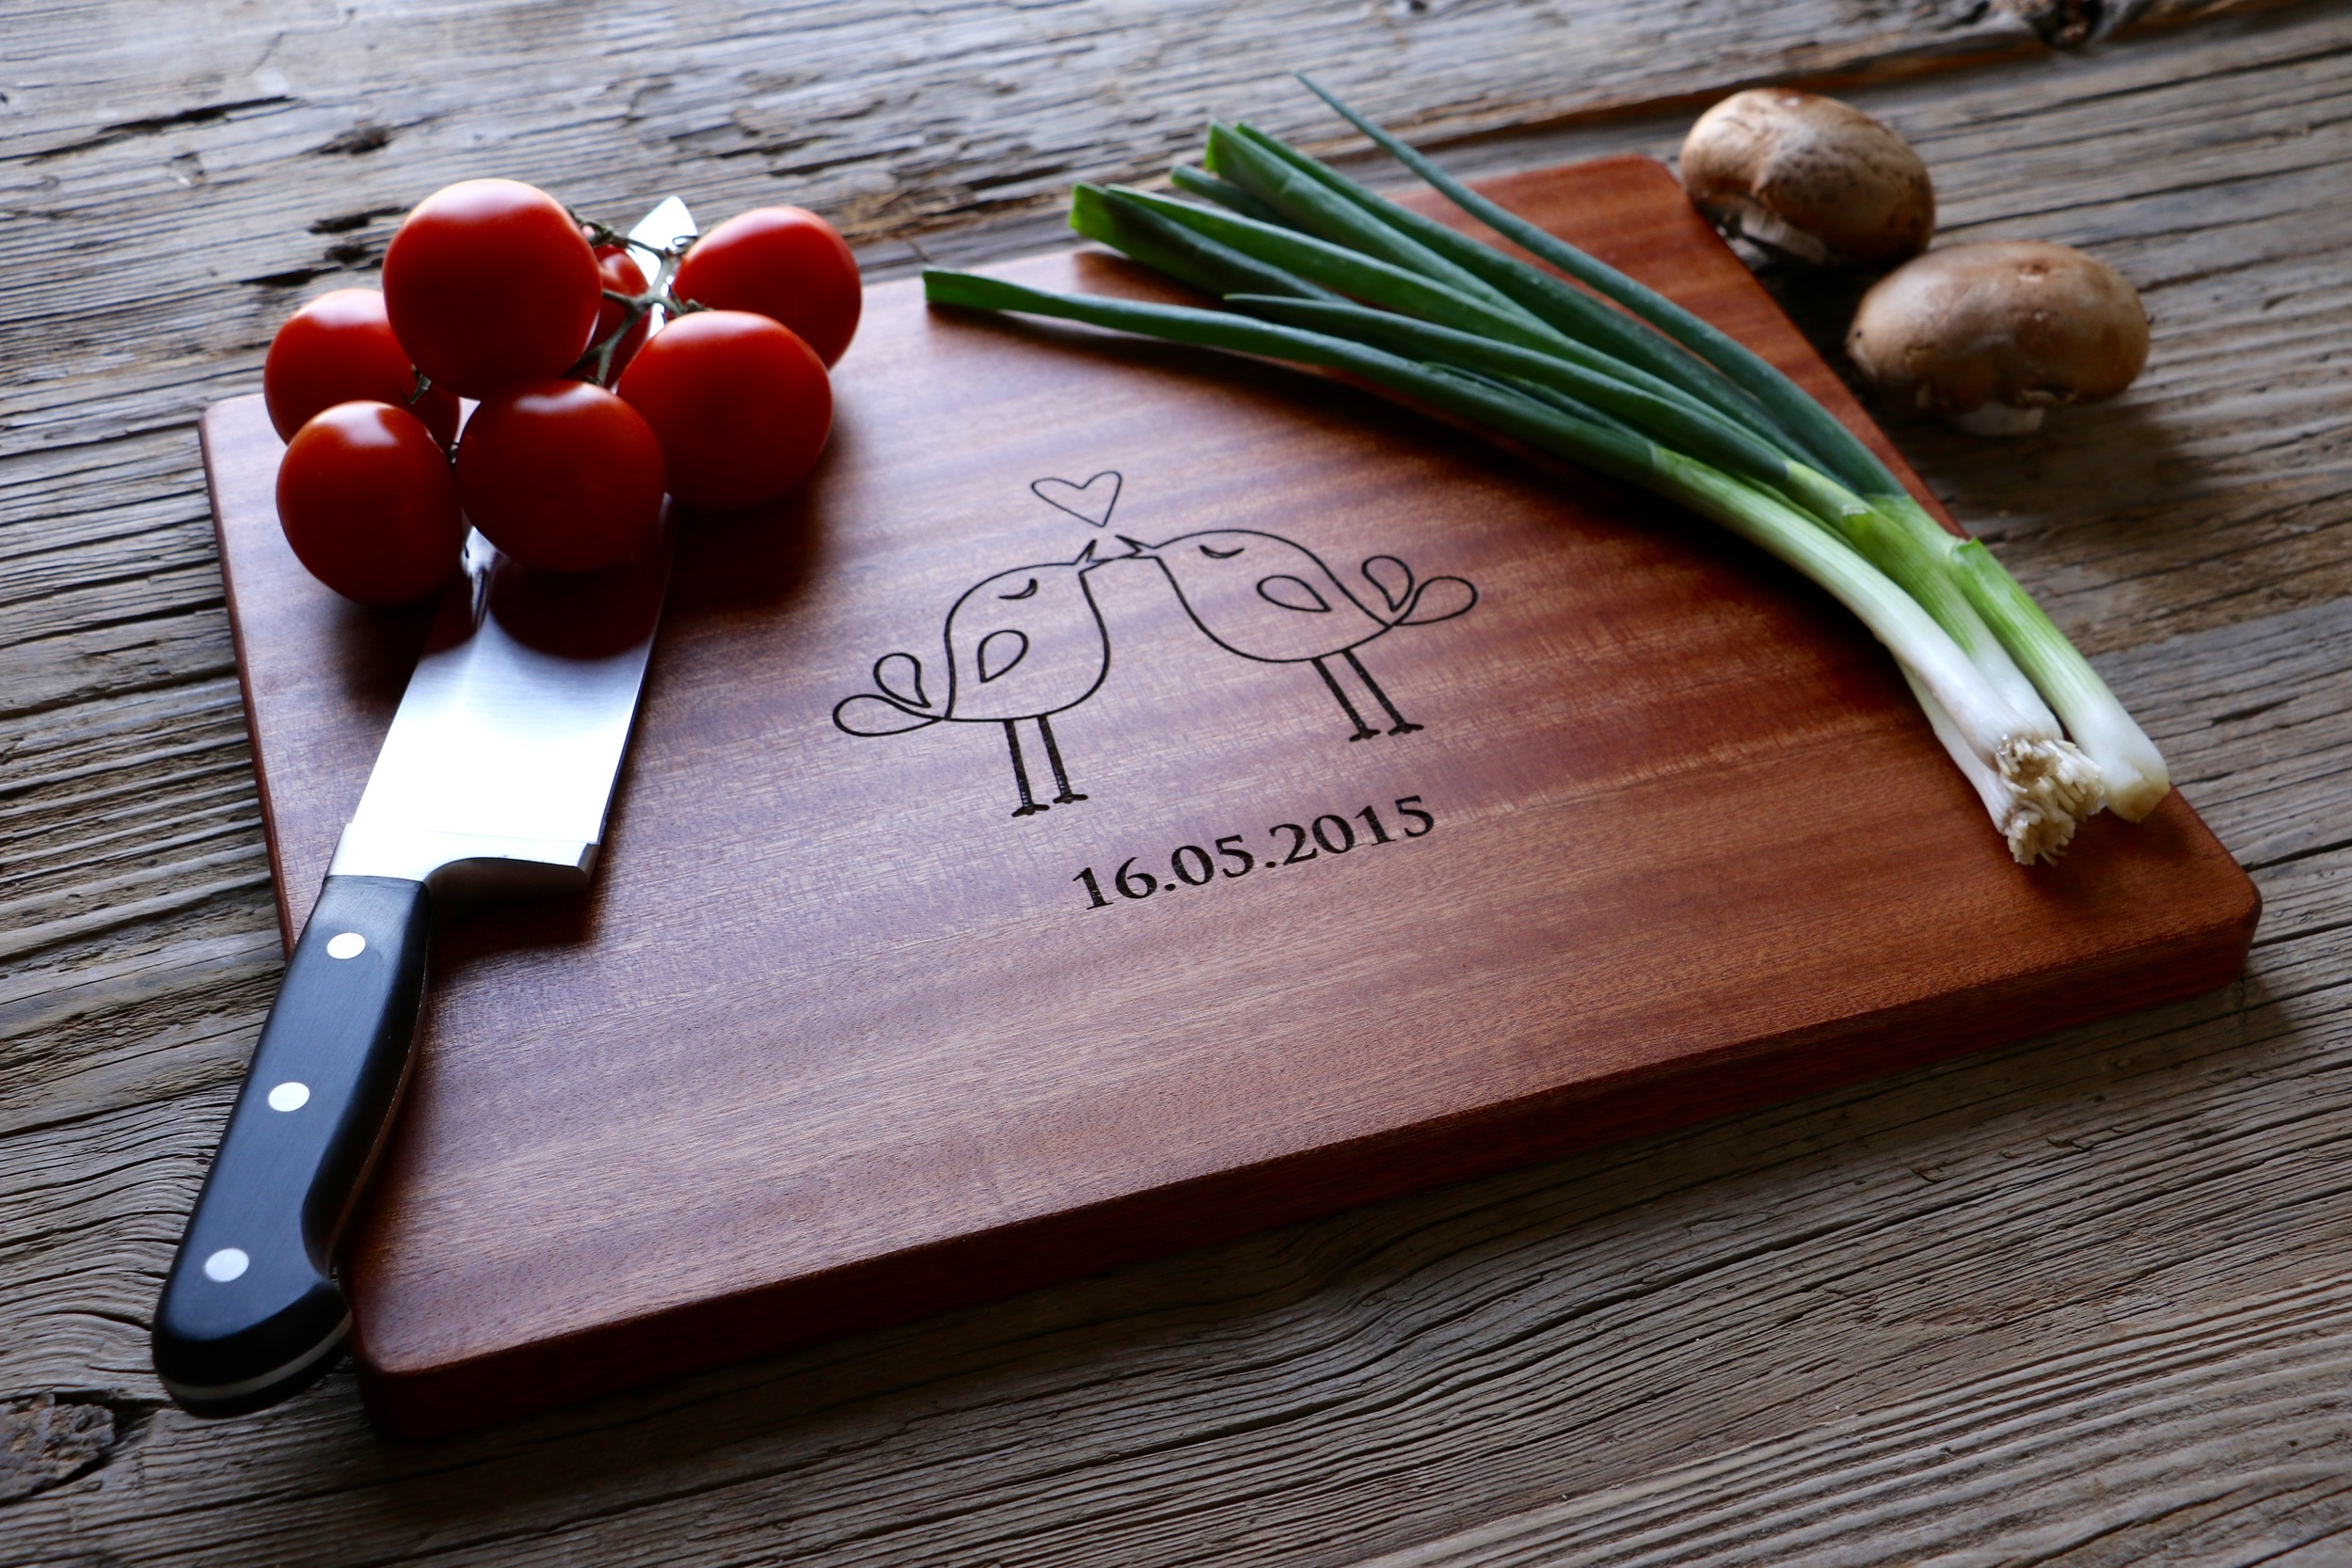 Sapele Wood Cutting board with Love Birds design engraved.